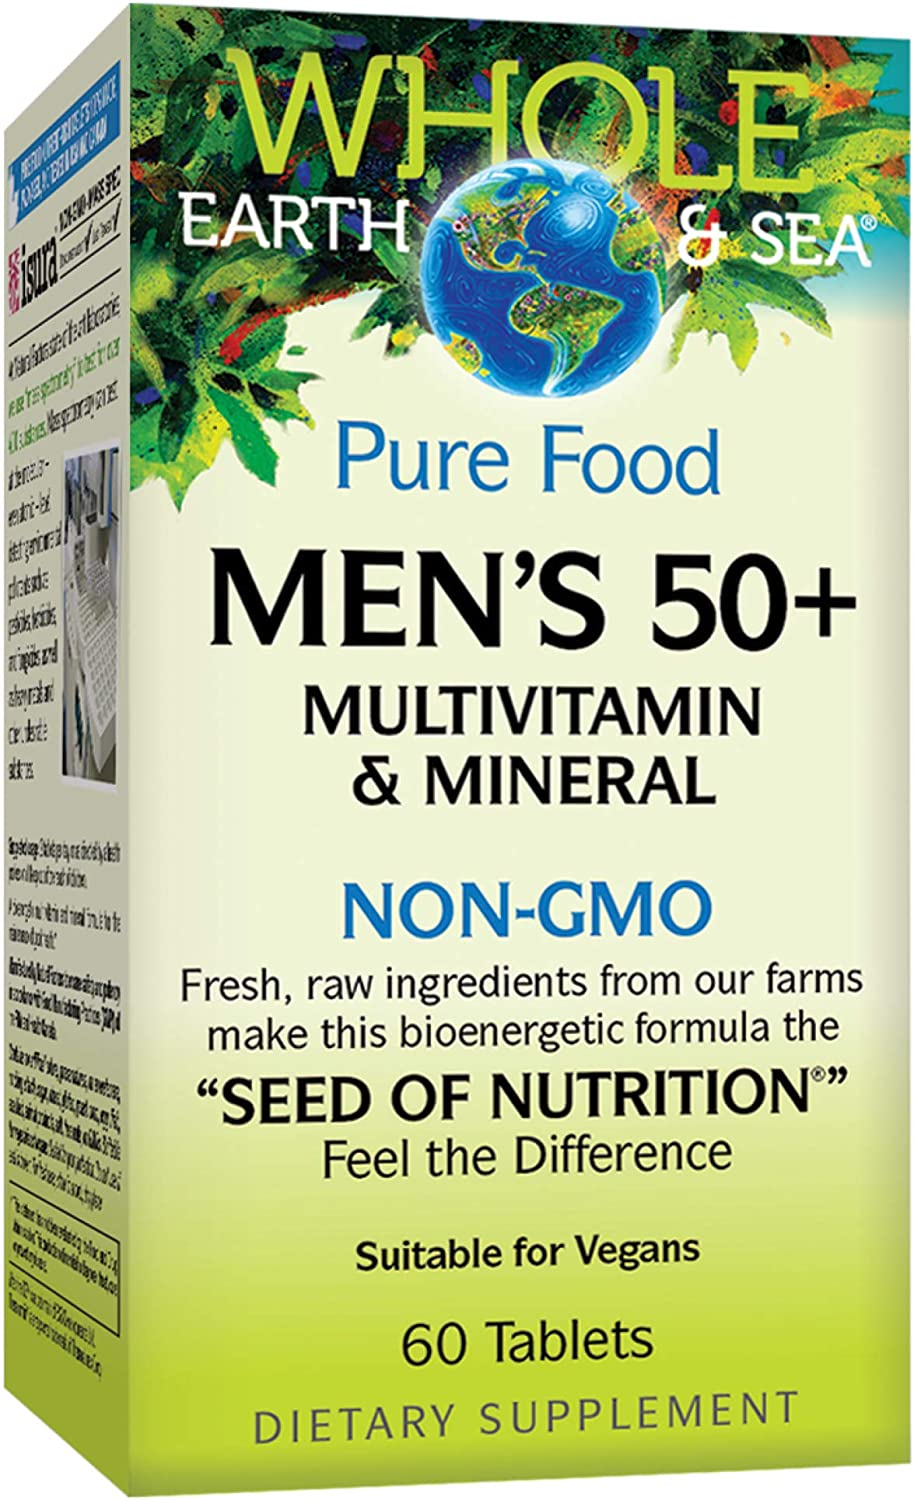 Whole Earth Sea New popularity from Max 86% OFF Natural Multivitamin Men's 50+ Factors